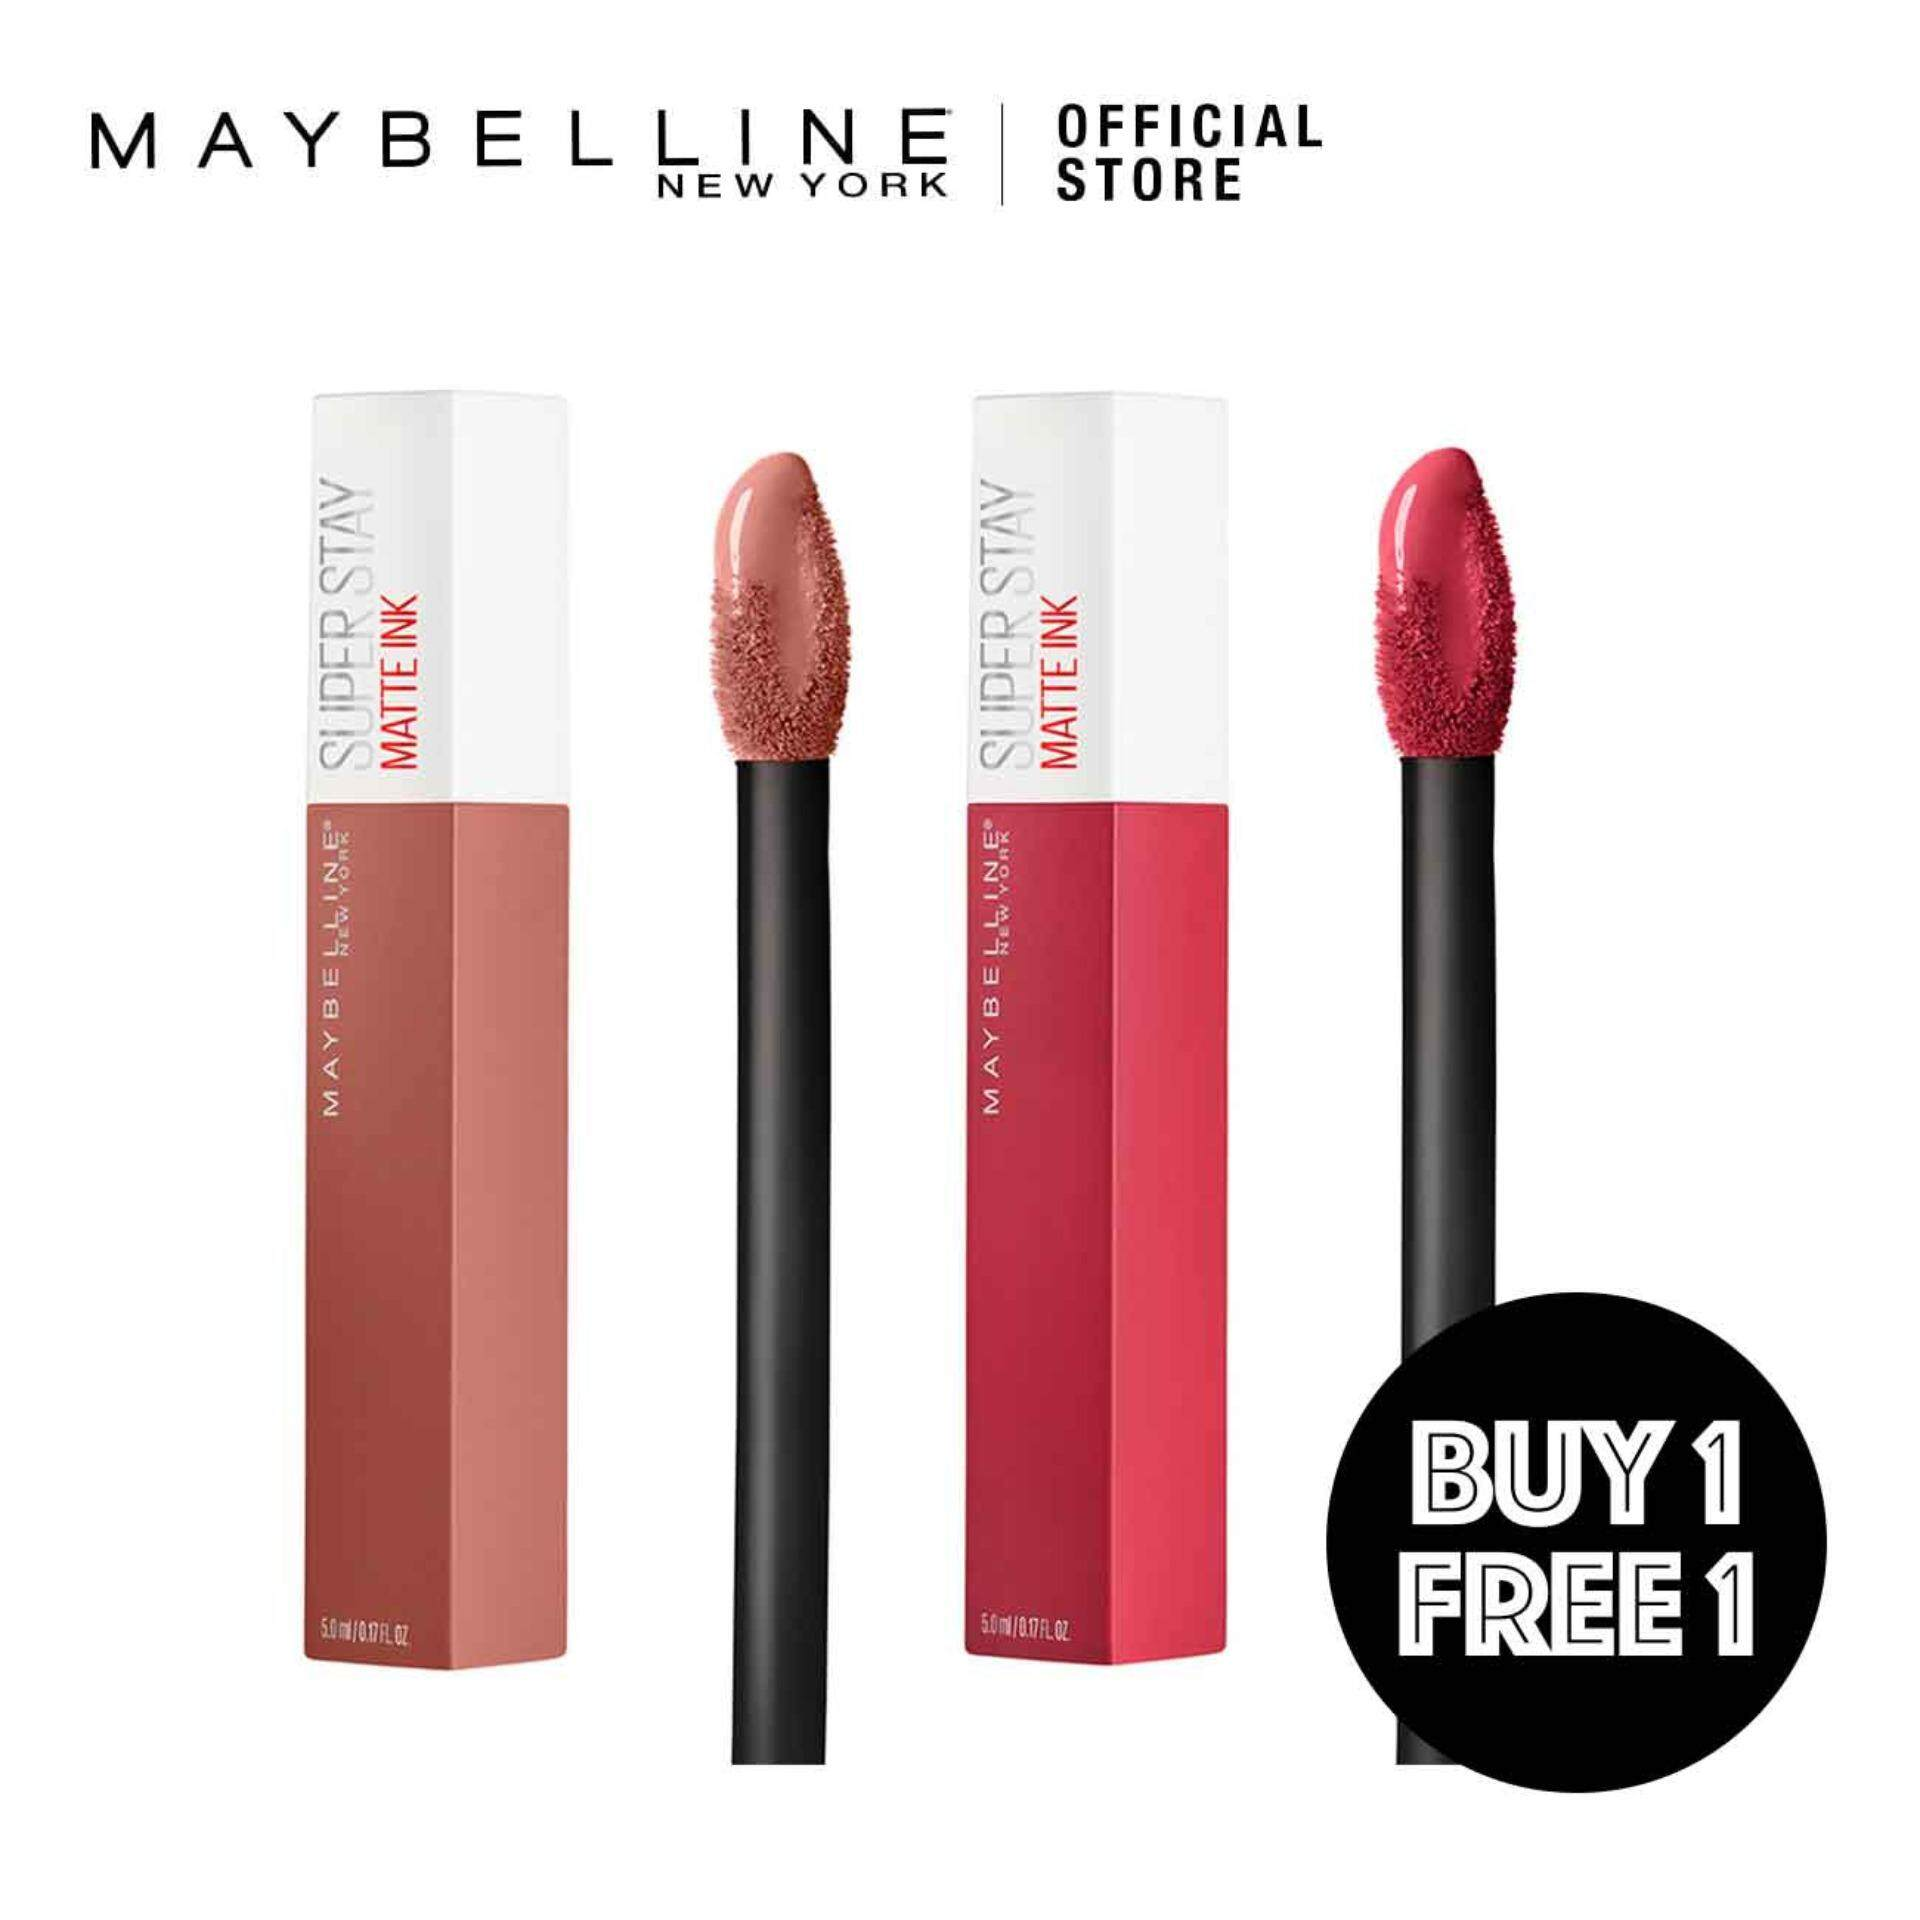 [B1F1] Maybelline Superstay Matte Ink Un-Nude Lipstick - Ruler FREE Seductress